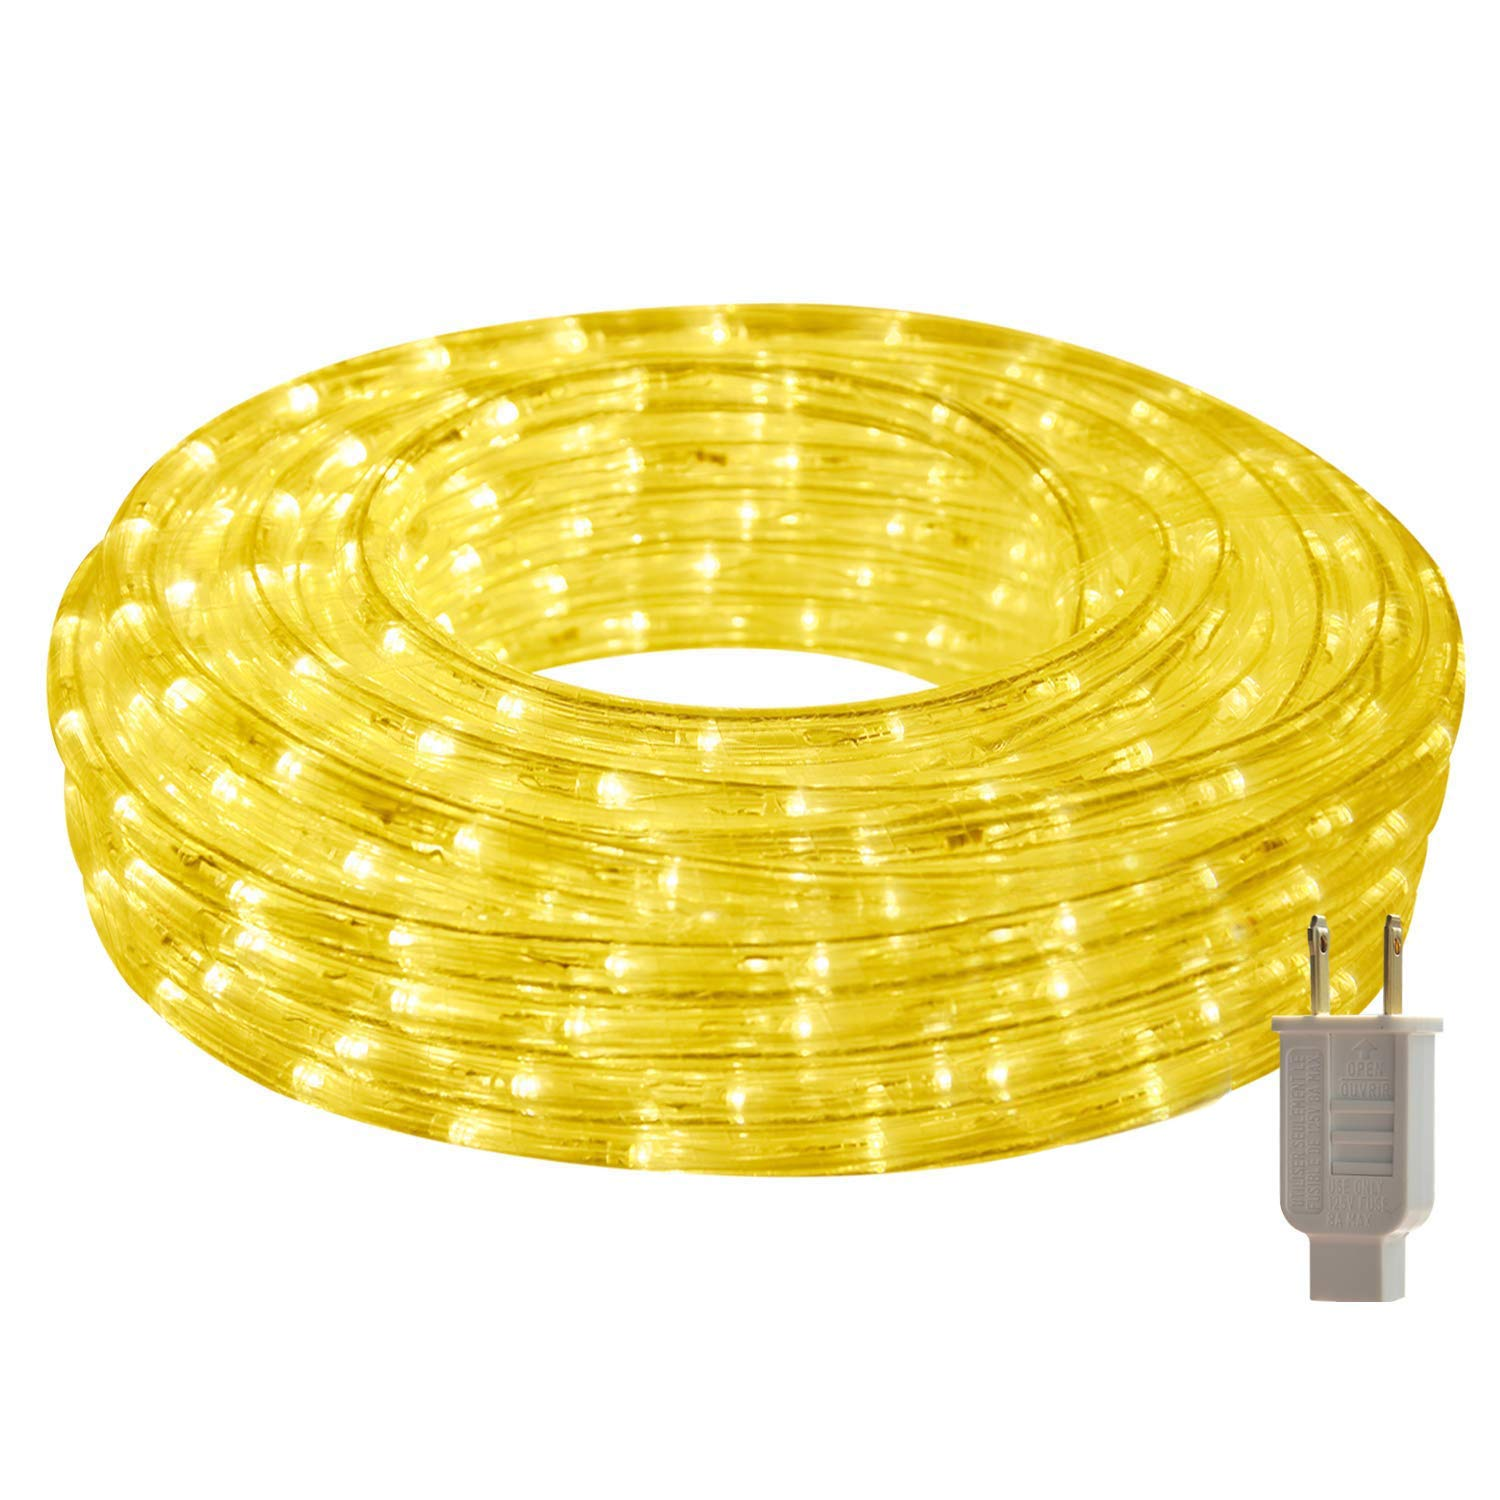 HEI LIANG LED Rope Lights, 120V Waterproof LED String Lights for Patio, Backyard, Garden, Wedding, Christmas Party, Indoor and Outdoor Decoration (50FT/15M, Warm White)